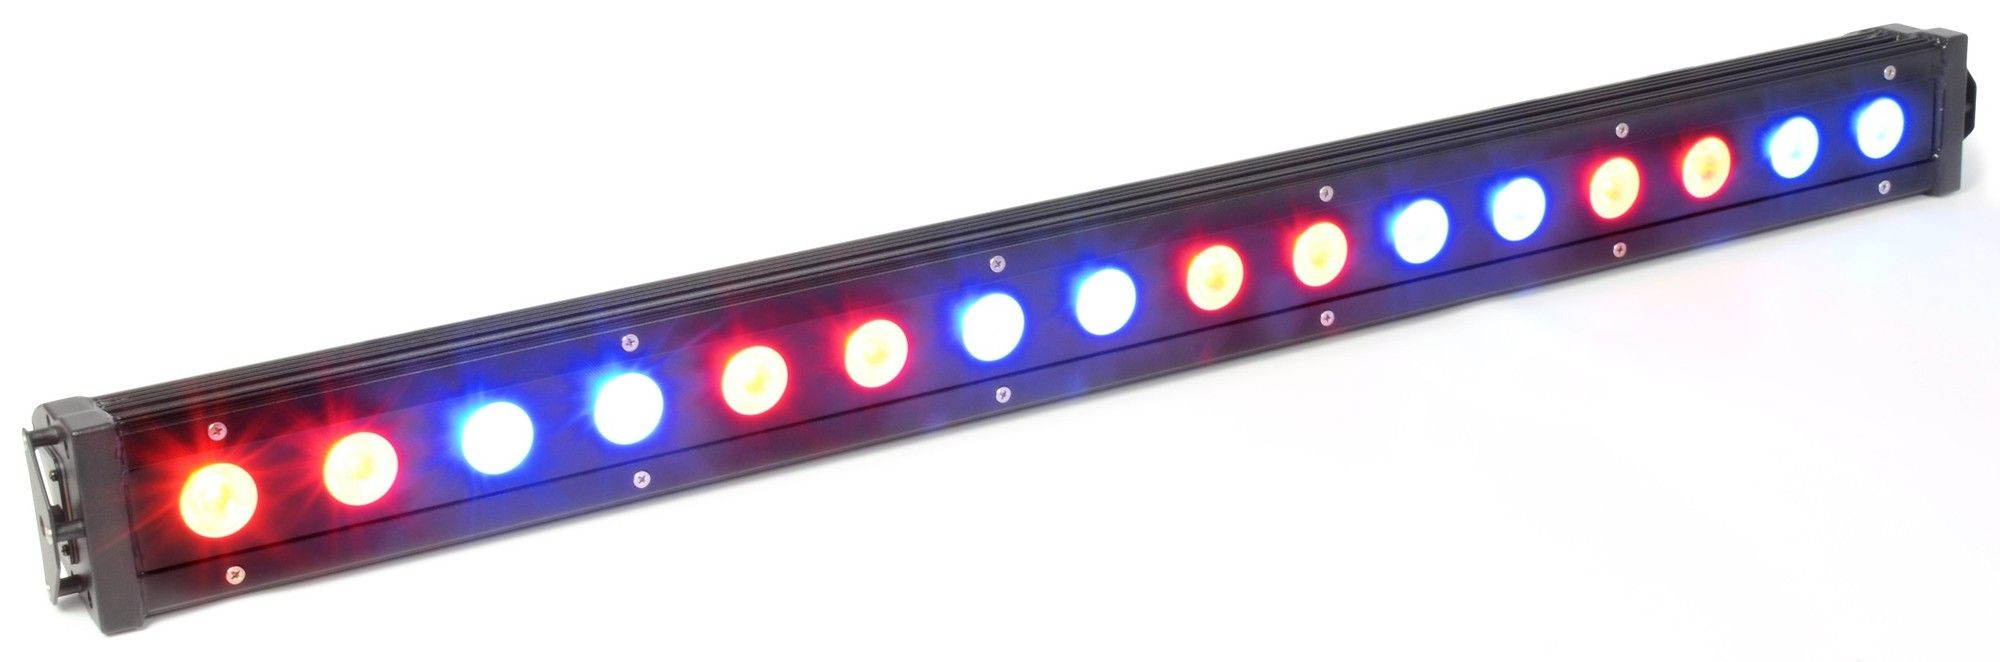 BeamZ LCB-48IP Kleurenunit 16x 3W Tri-color LED's DMX